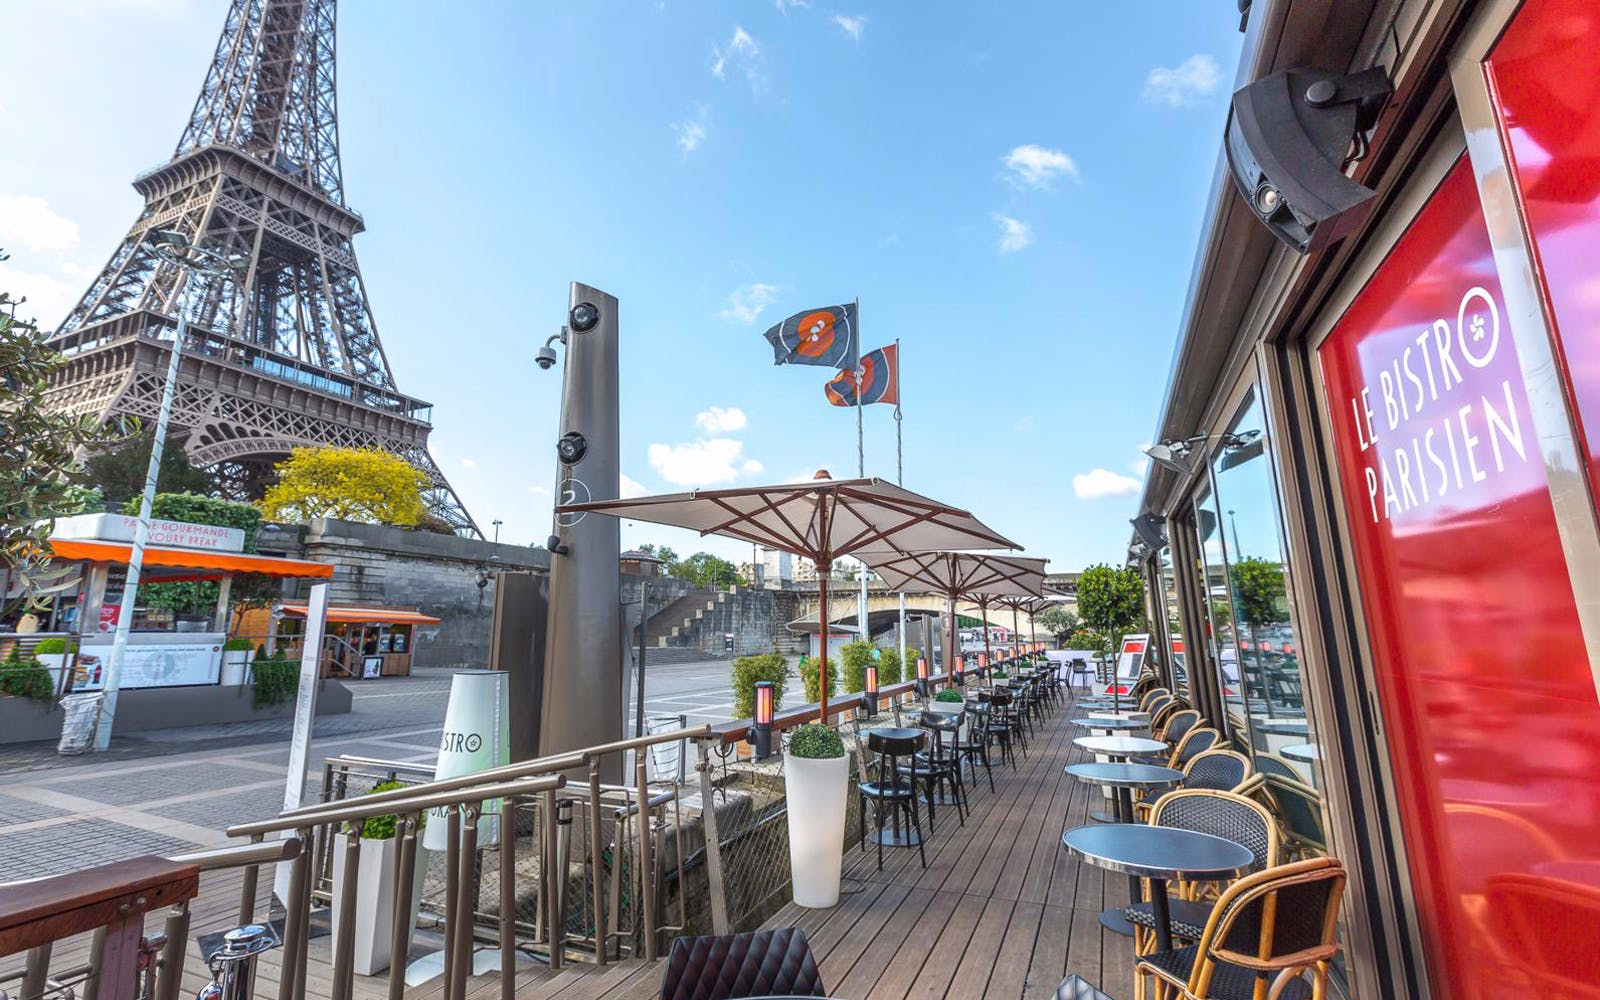 Lunch at Le Bistro Parisien Restaurant with Optional Seine River Cruise